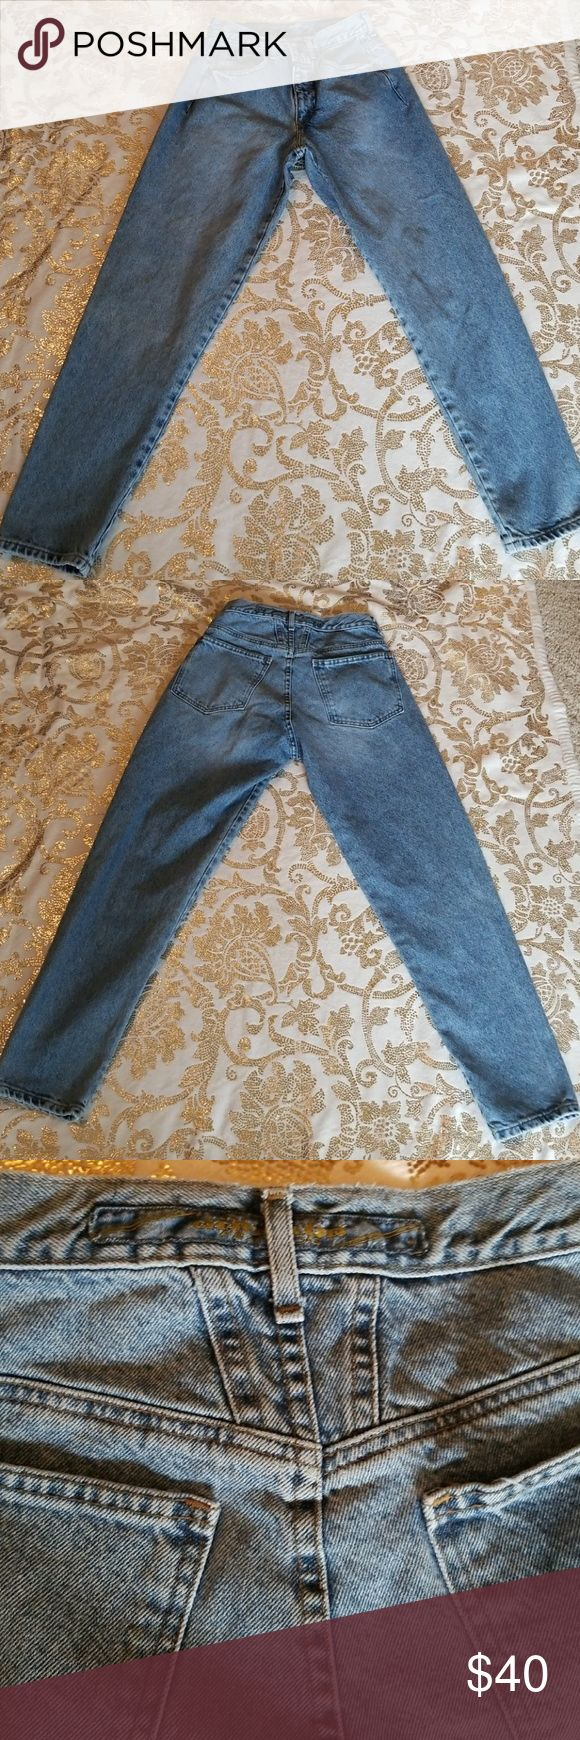 GIRBAUD JEANS VINTAGE 1990S One of the original 1990s jeans. ZIP fly excellent condition. 100% Cotton  Waist circumference 28 Rise 11 Length 38 Inseam 28 Girbaud Jeans